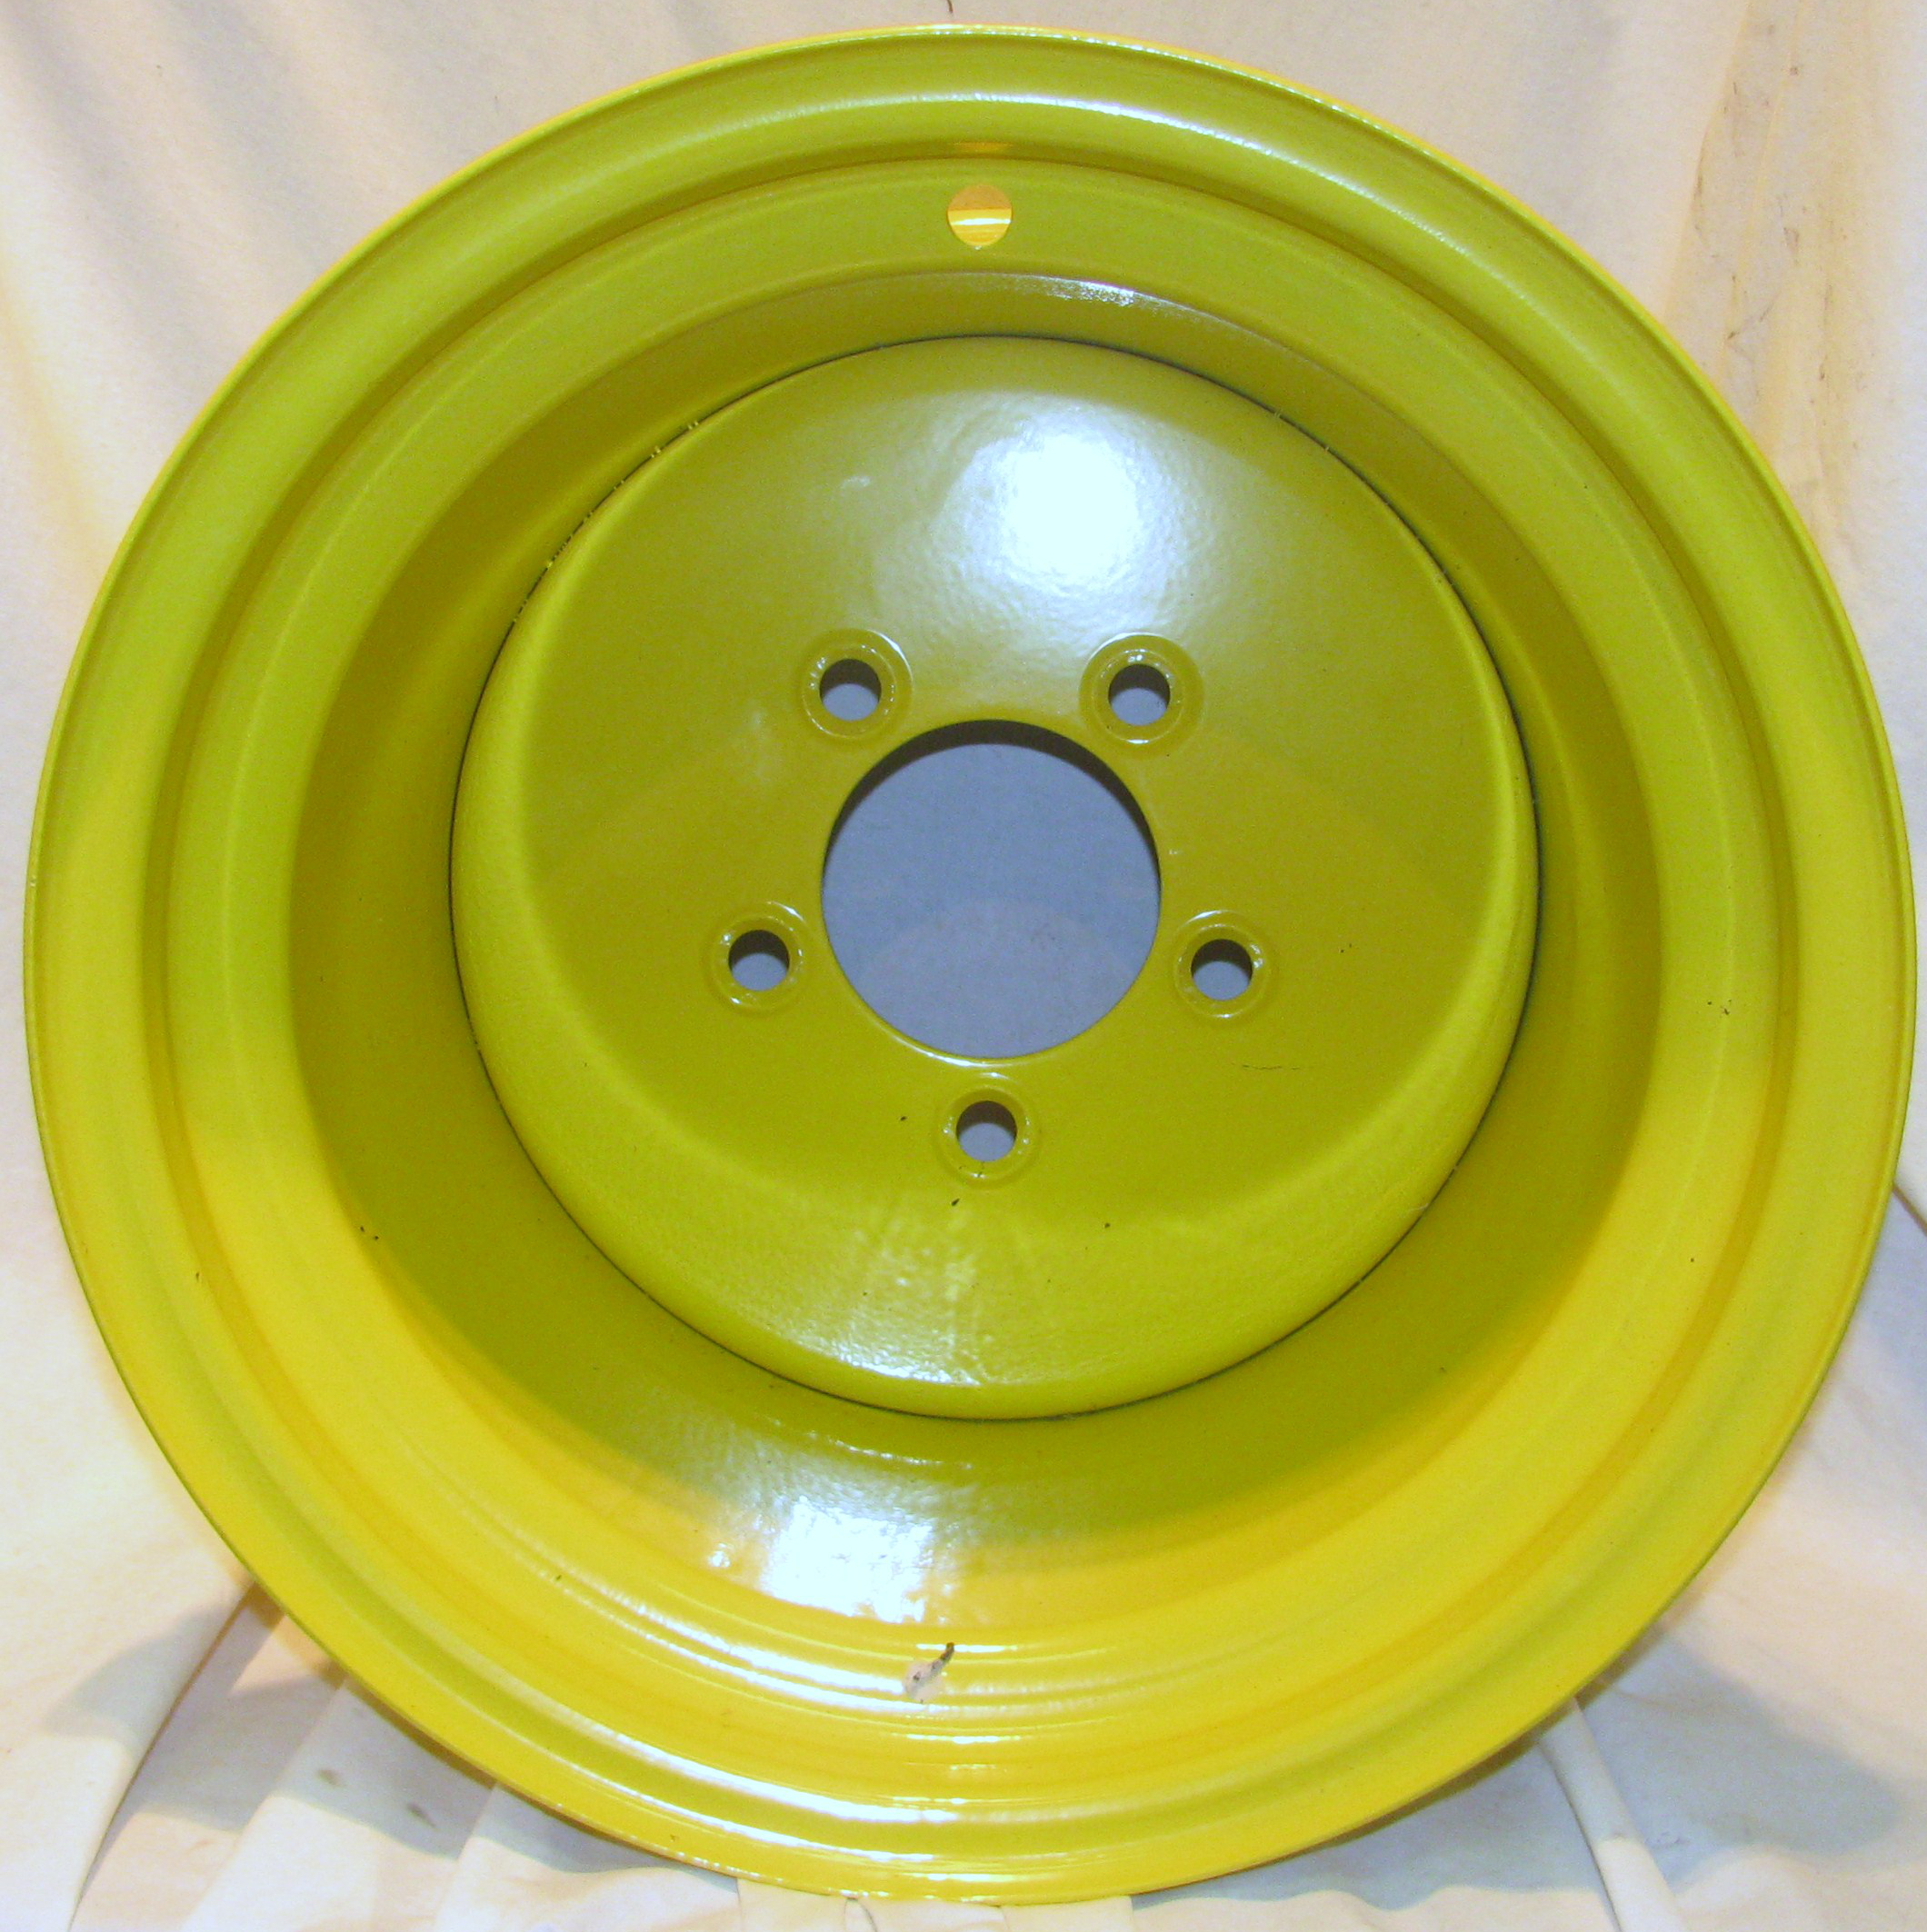 Riding Lawn Mower Hub Caps : Quot rim wheel for john deere zero turn riding lawn mower